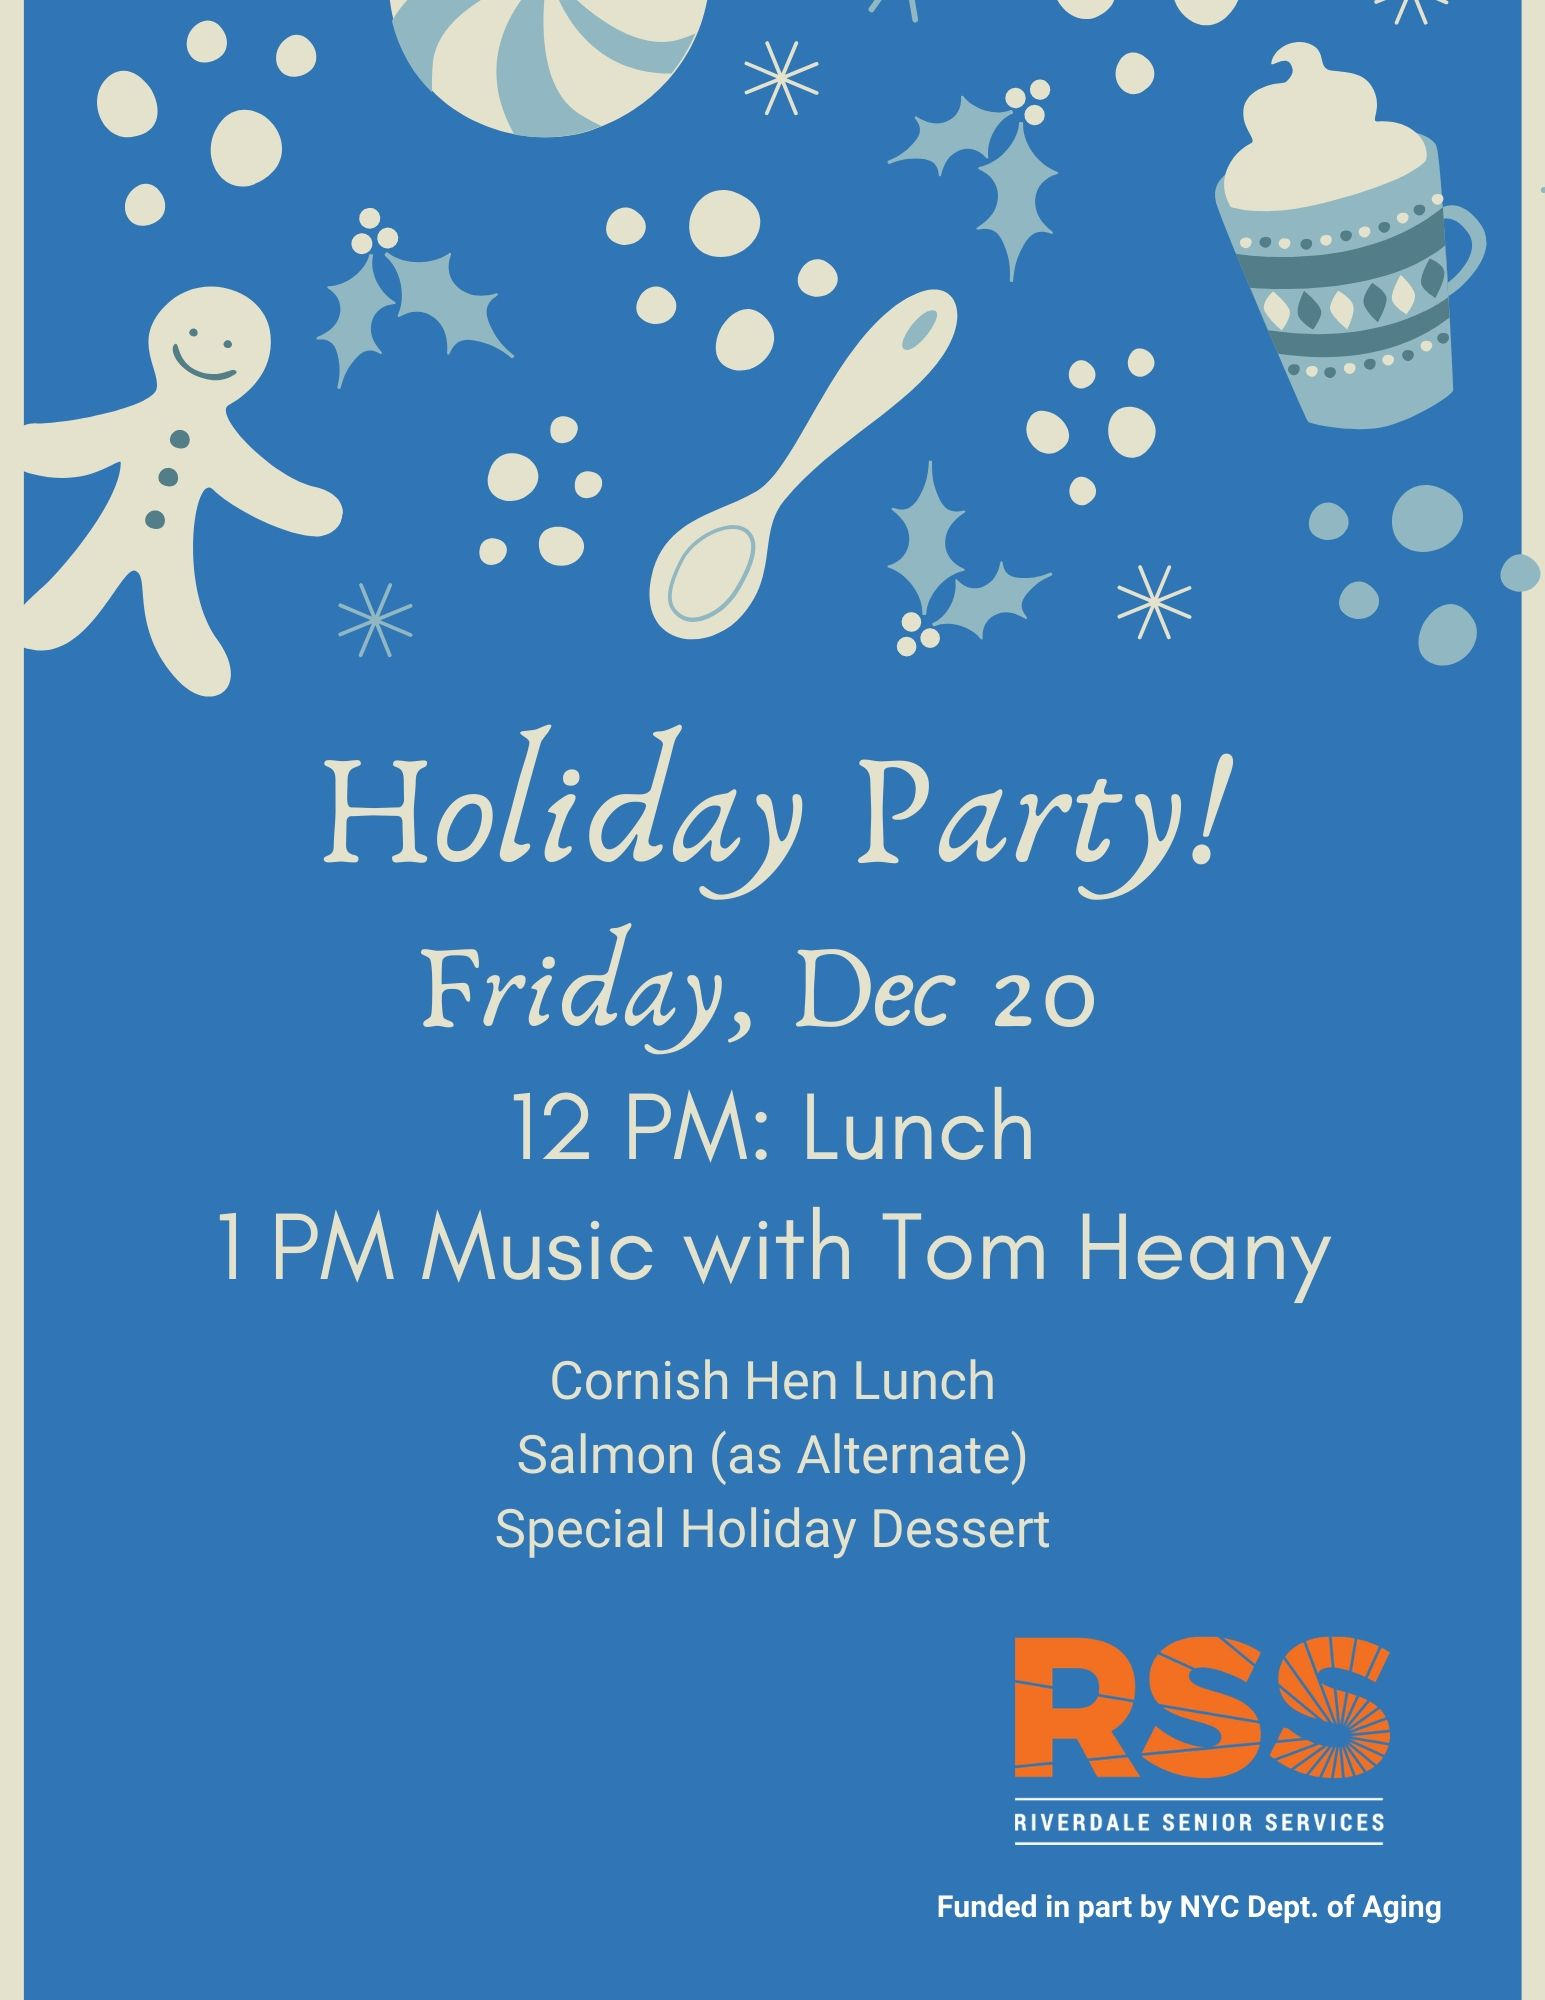 RSS Holiday Party